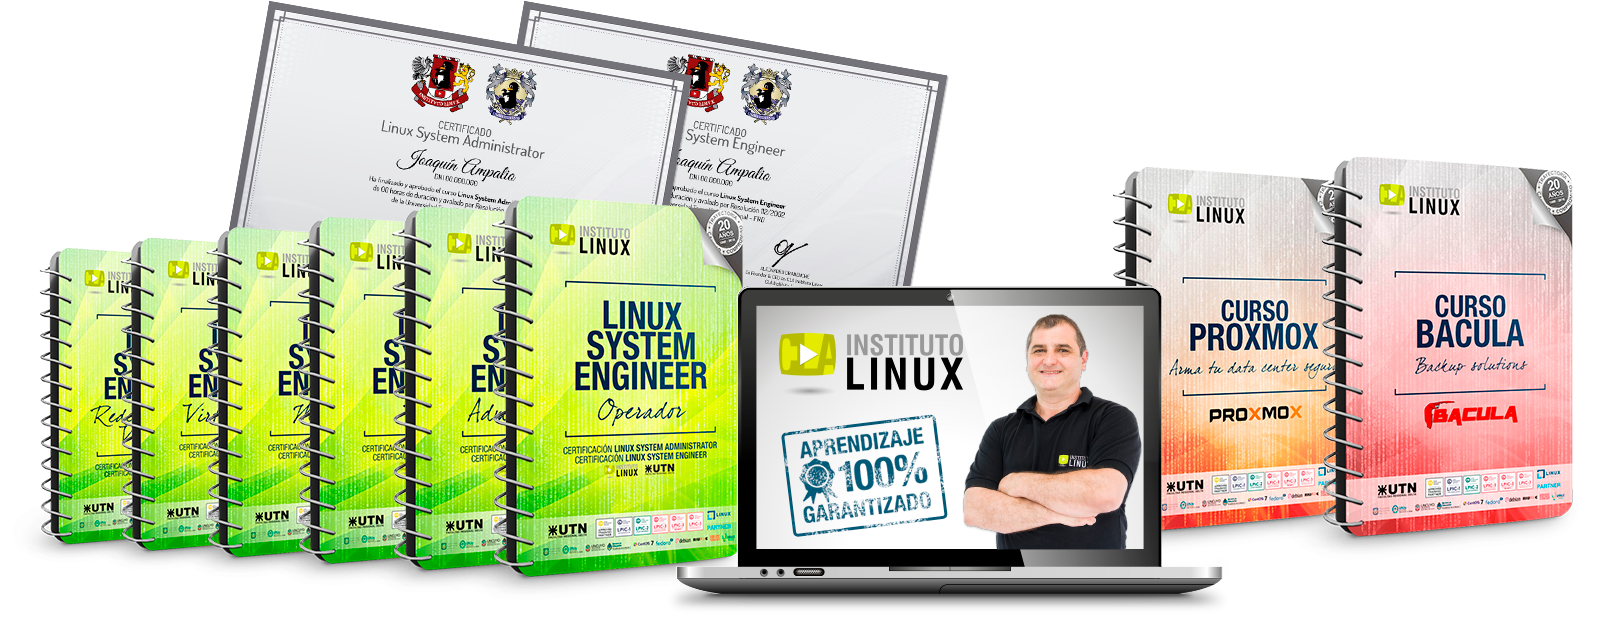 LINUX SYSTEM ENGINEER + BACULA + PROXMOX